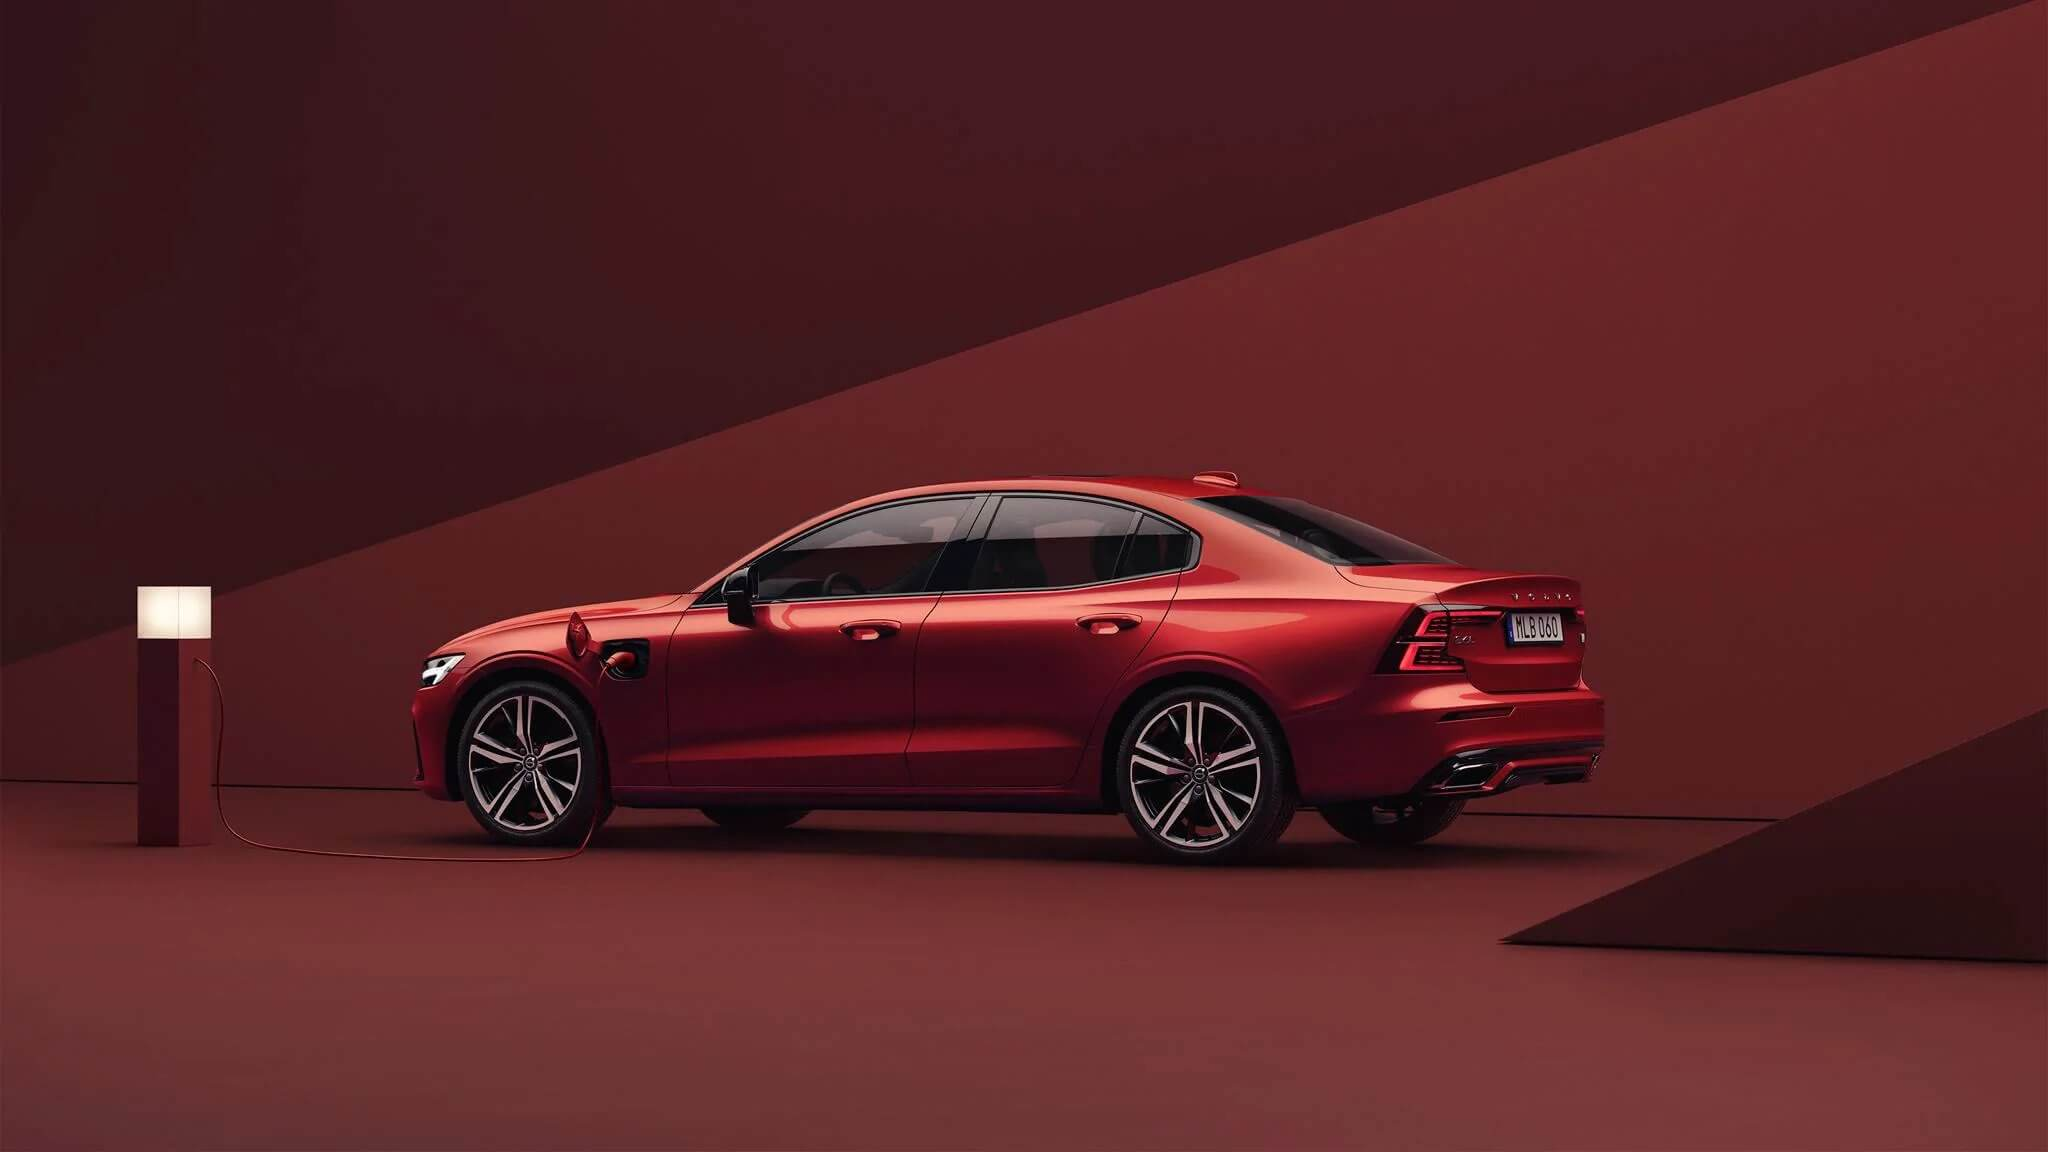 The Volvo S60 Recharged